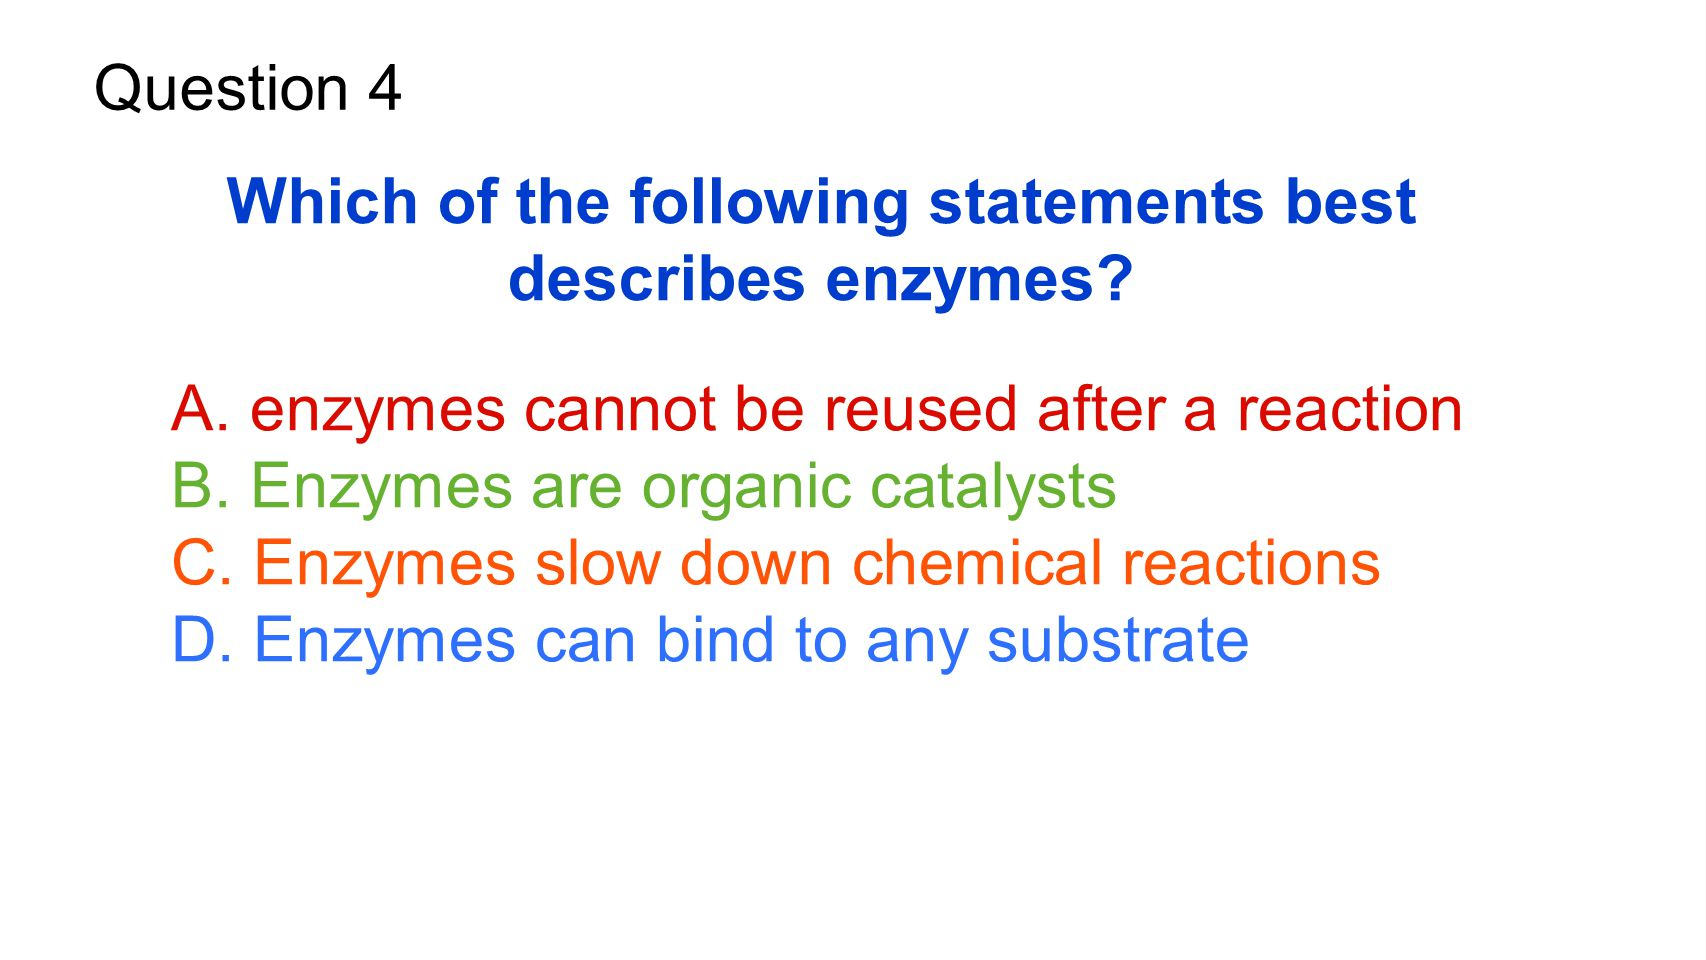 Which of the following statements best describes enzymes